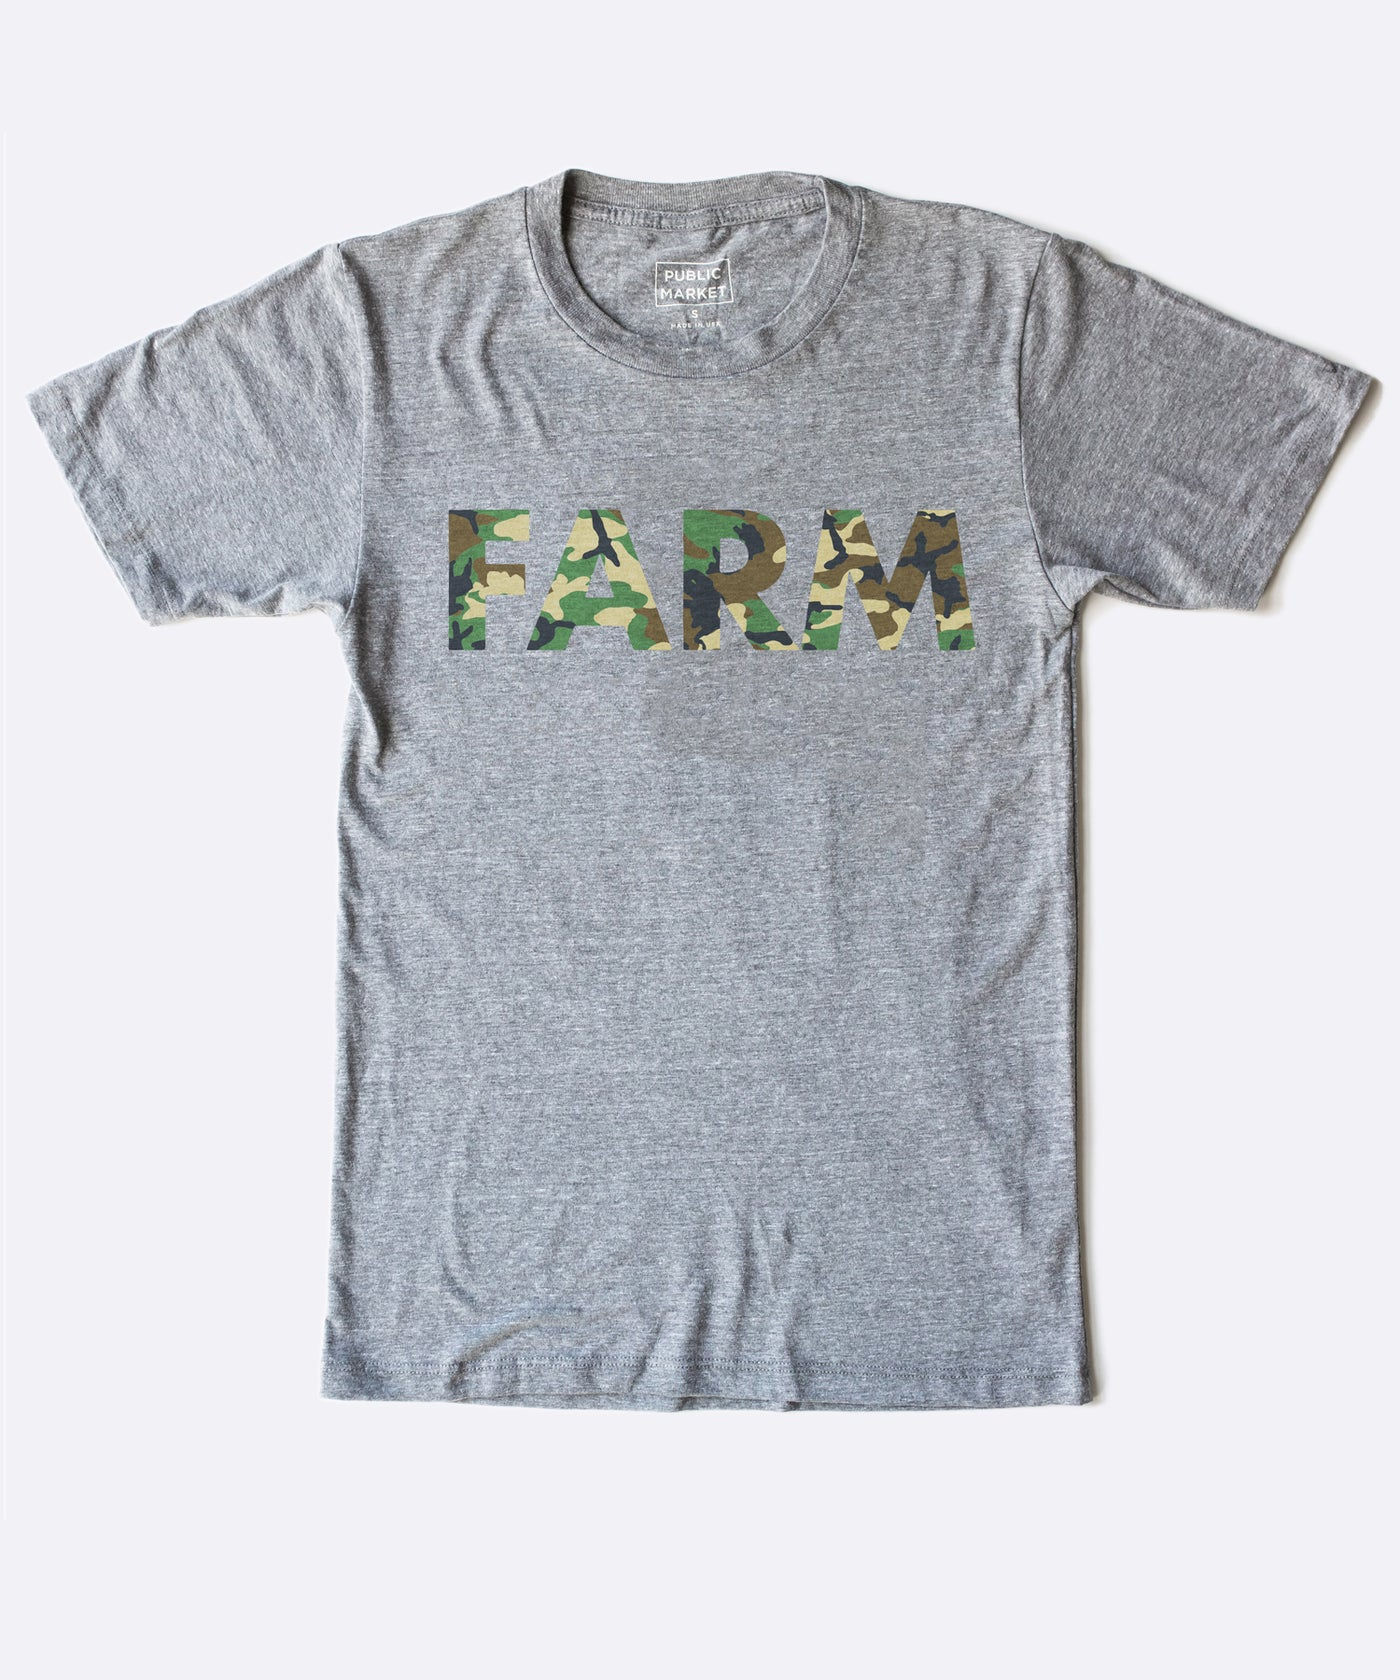 farm-tshirts-farming-apparel-farmers-tshirts